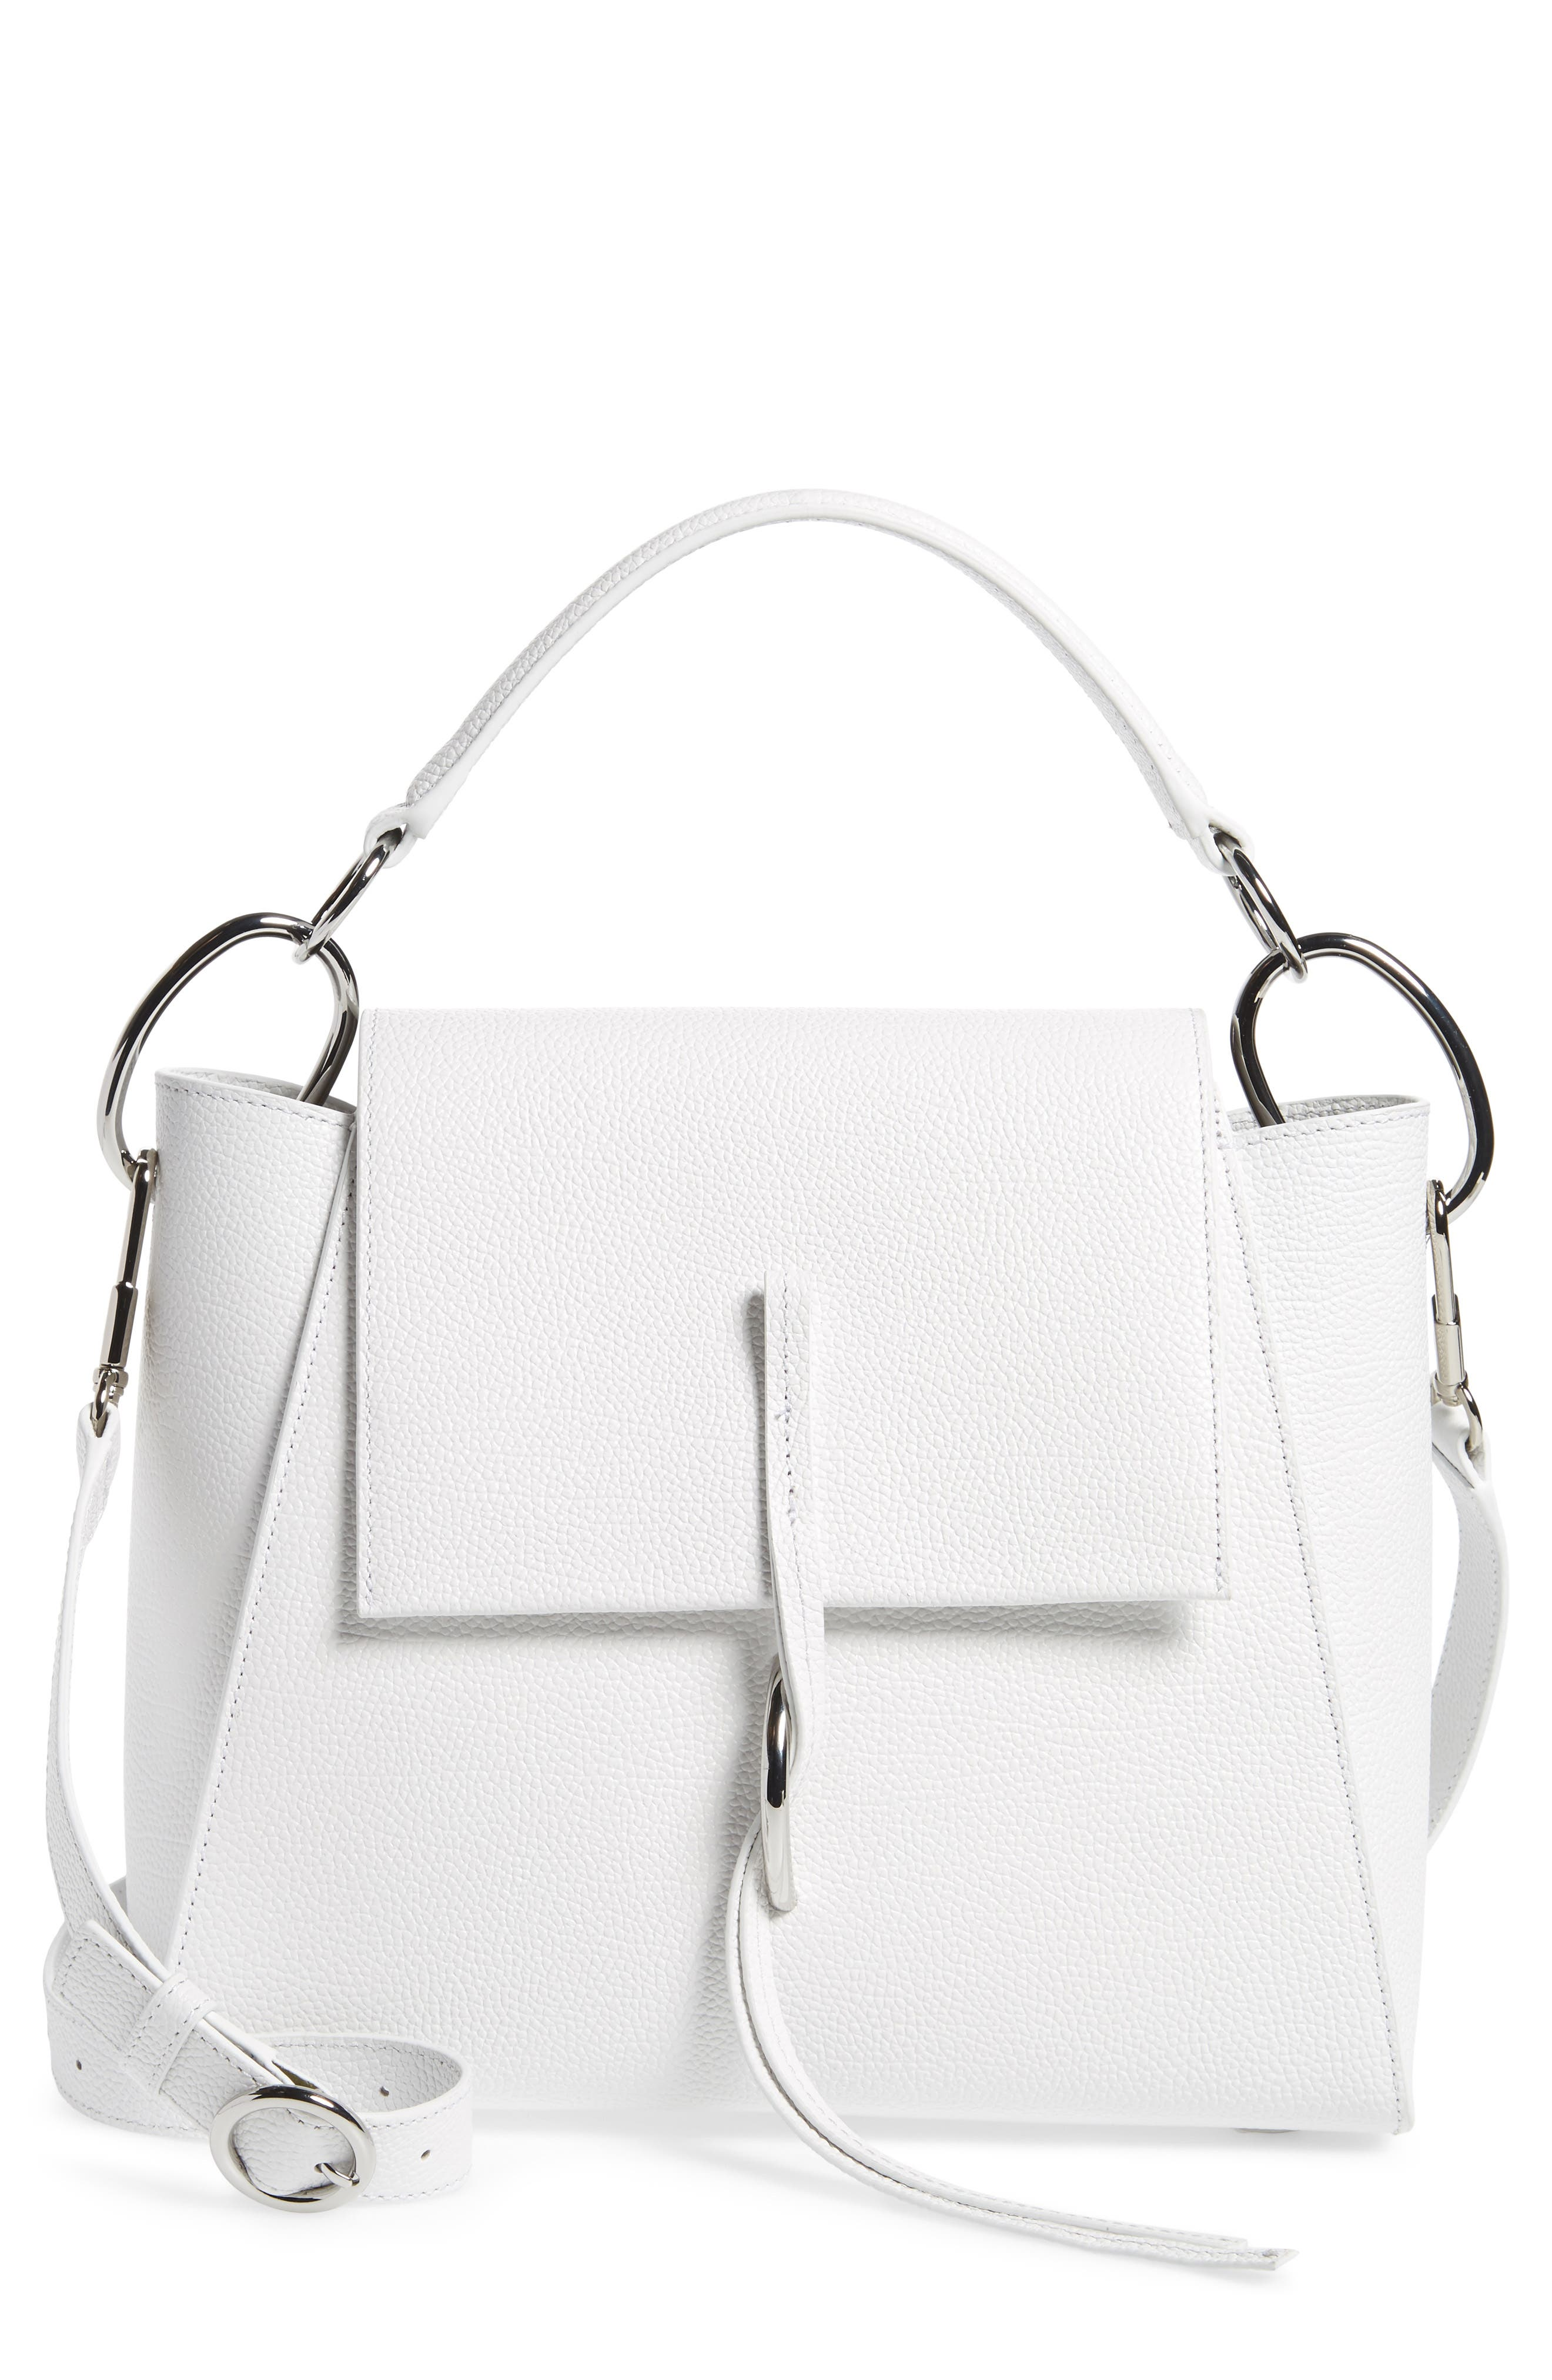 Leigh Top Handle Leather Satchel,                             Main thumbnail 1, color,                             100